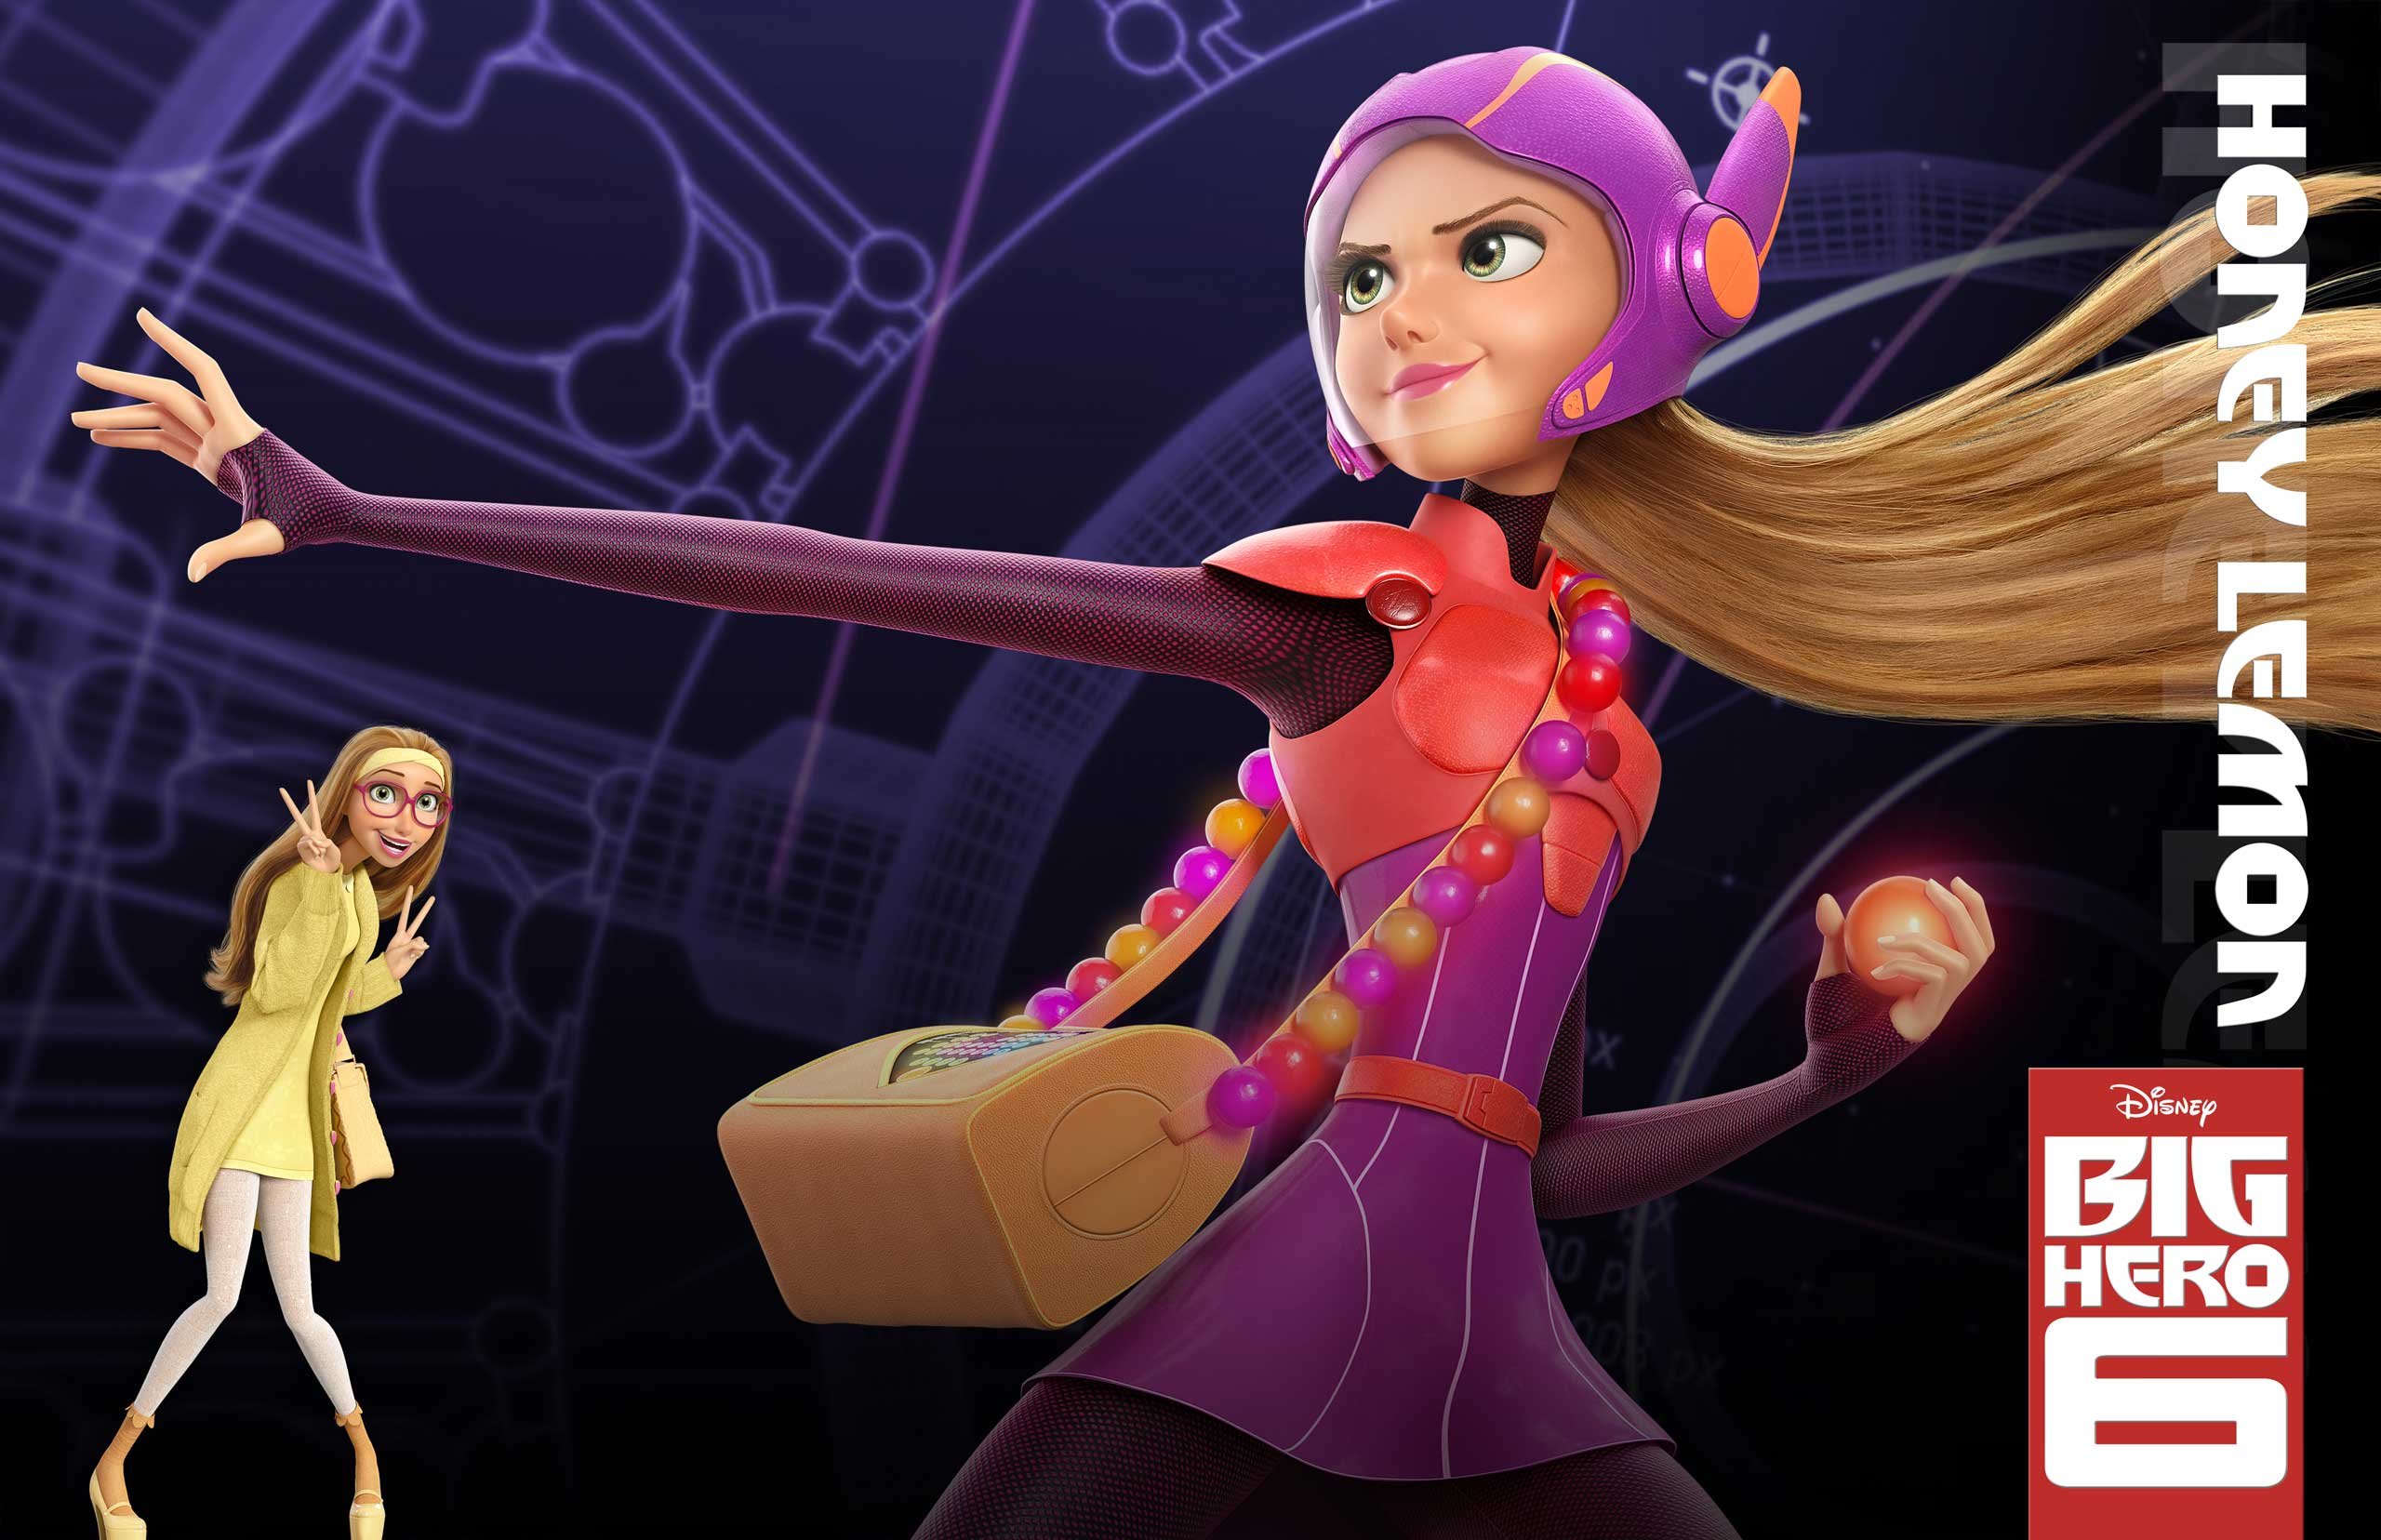 Honey Lemon, voiced by Génesis Rodríguez, fights crime with her purse, which doubles as a mini-lab that can churn out spheres that can disable, explode, or do a host of other things to foes.